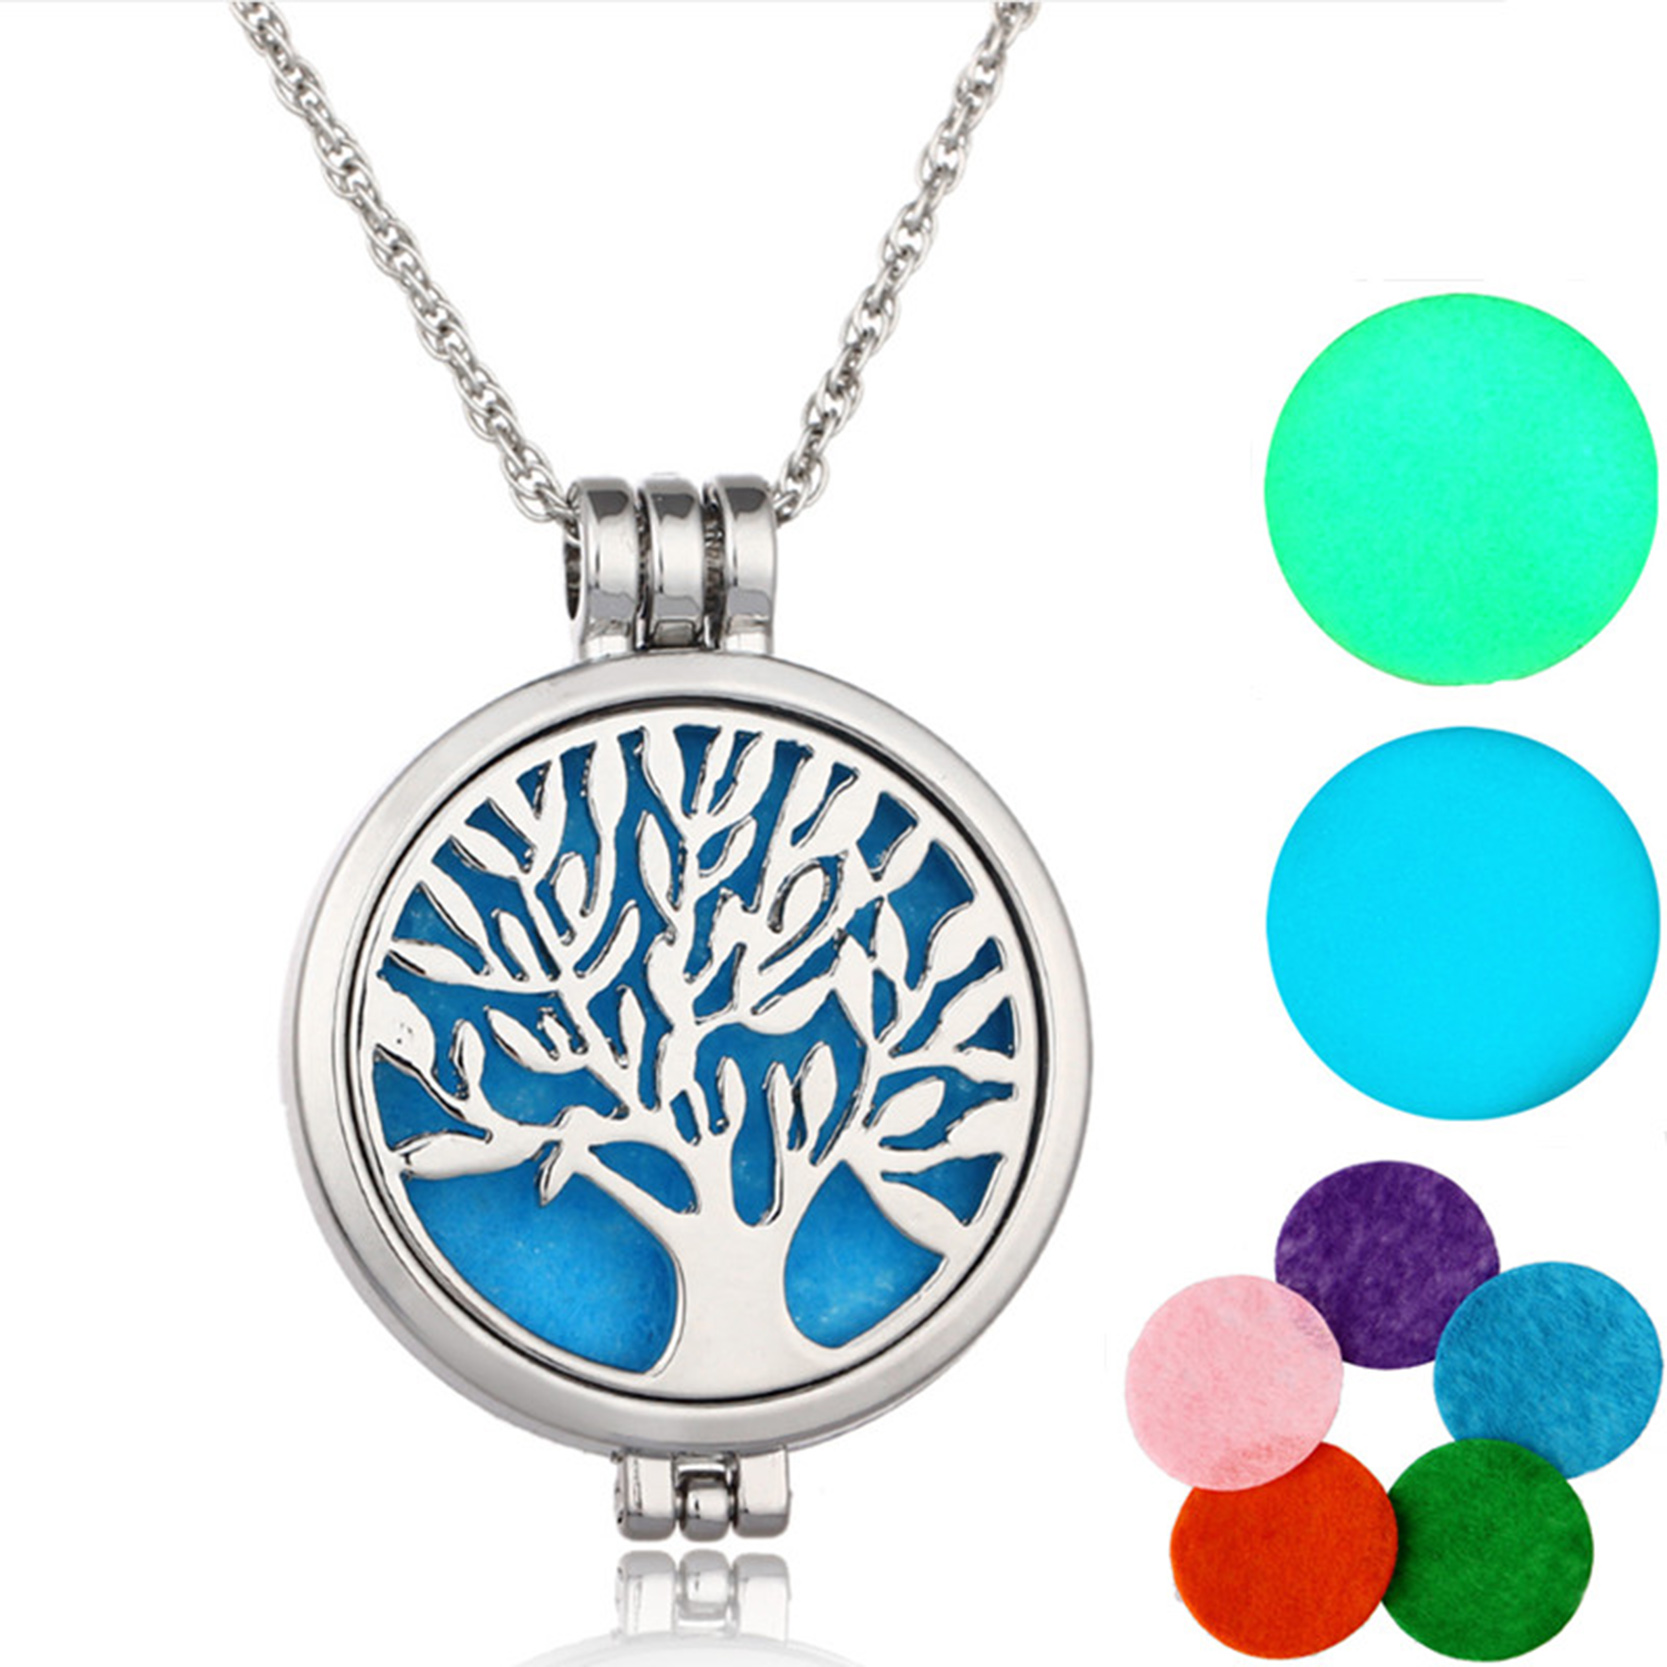 Aromatherapy Necklace Silver Plated With